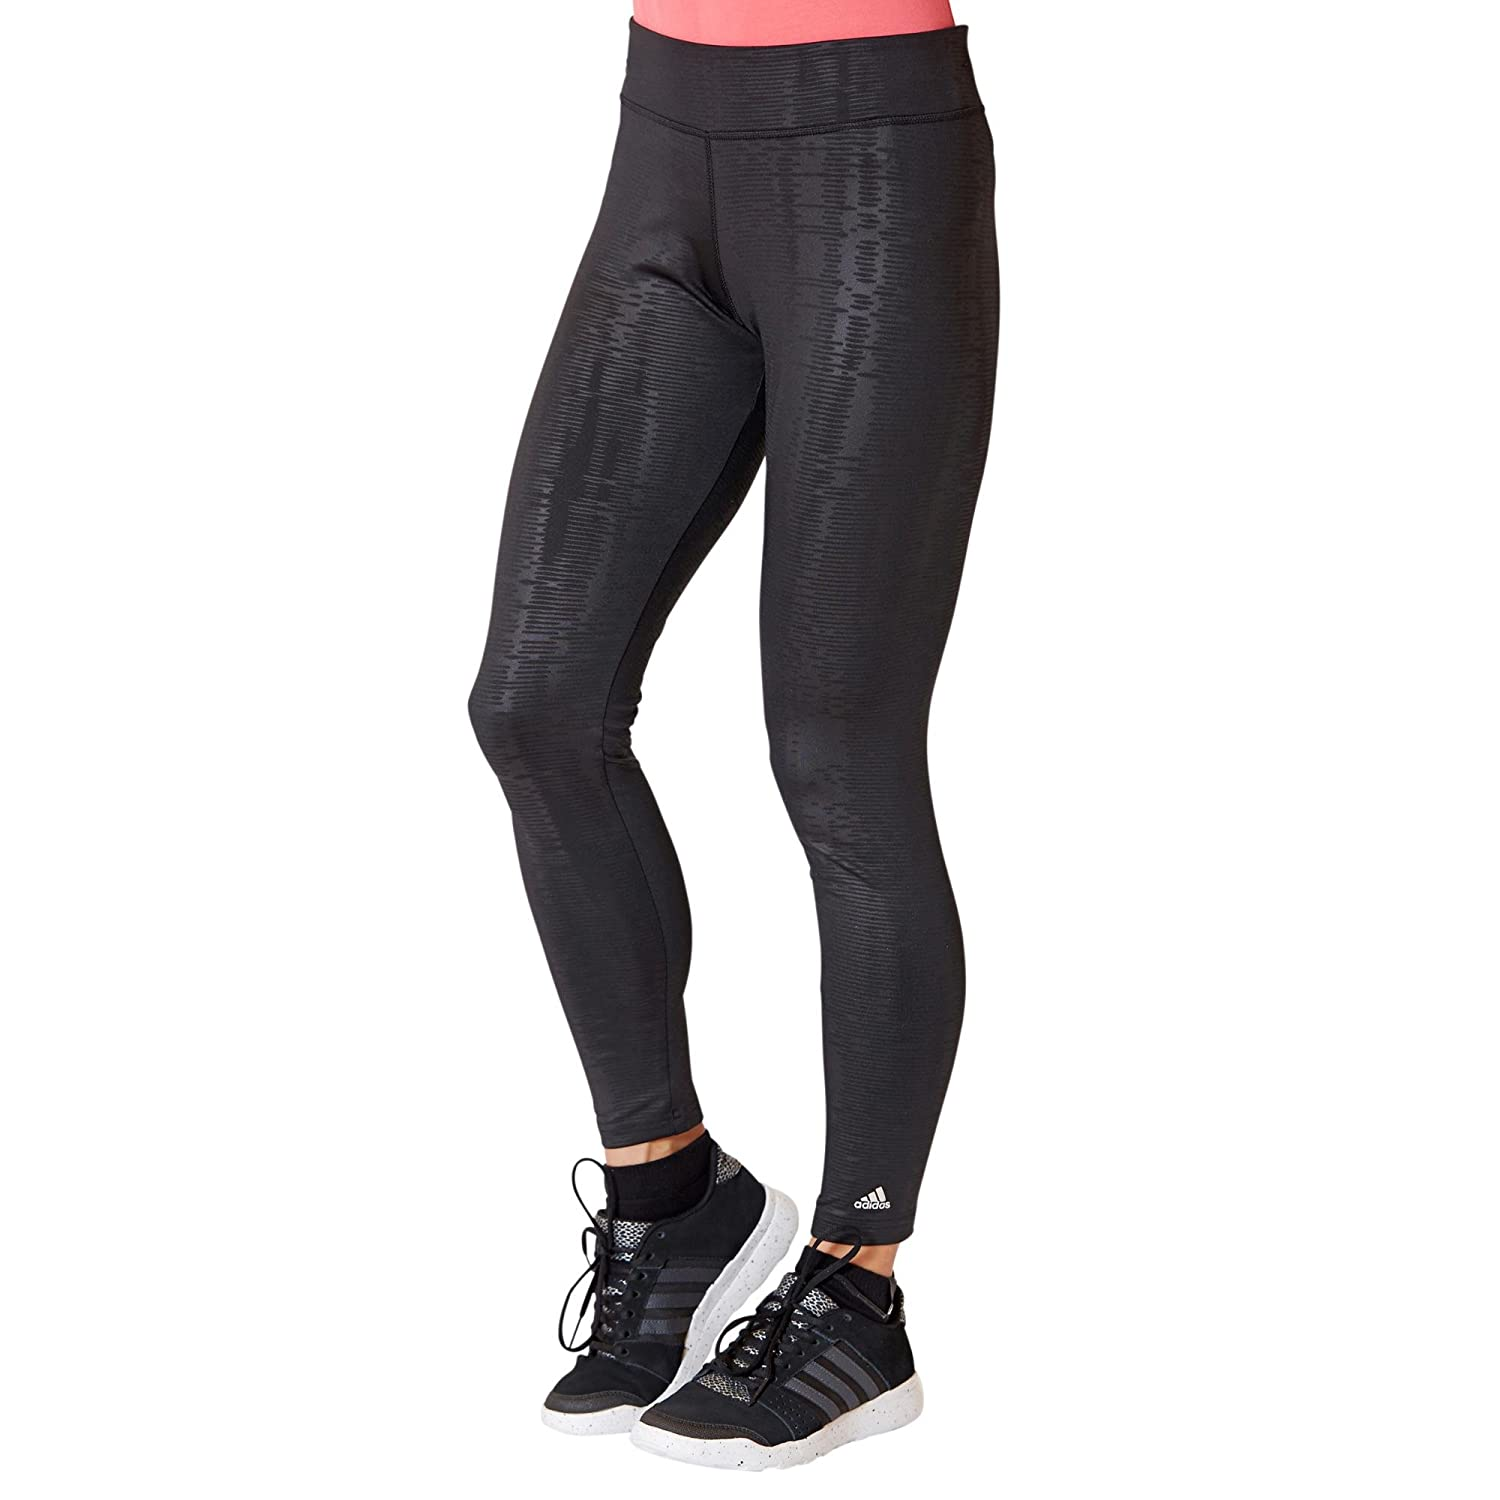 6e98a2a2094d26 Top2: Adidas Ultimate Fit Women\'s Training Tights - AW15